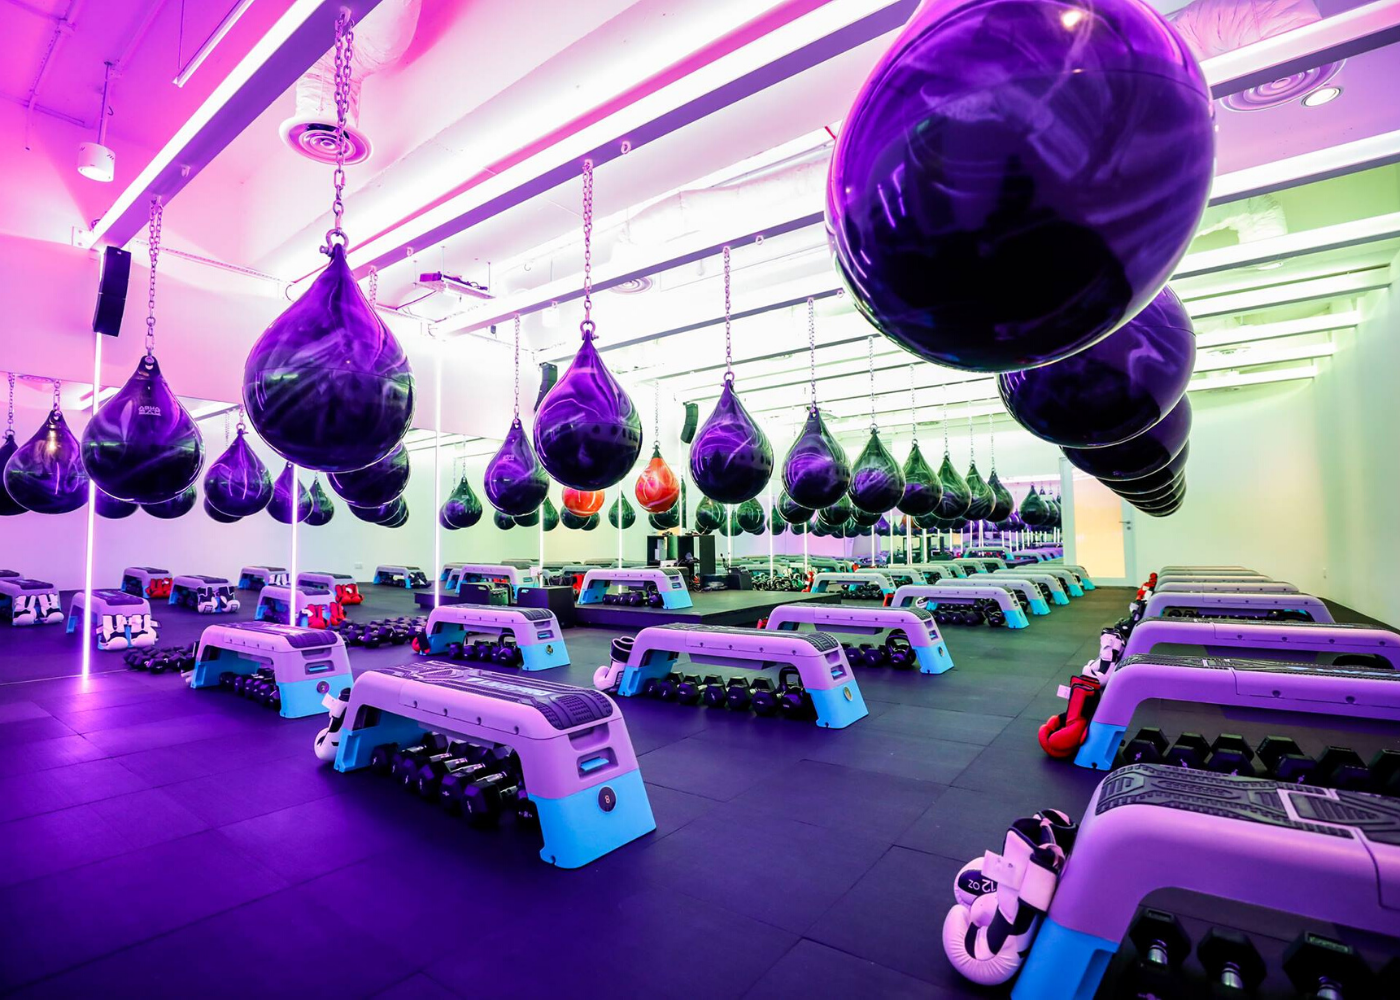 From yoga to HIIT on a dime, keeping fit is no sweat at these affordable fitness classes